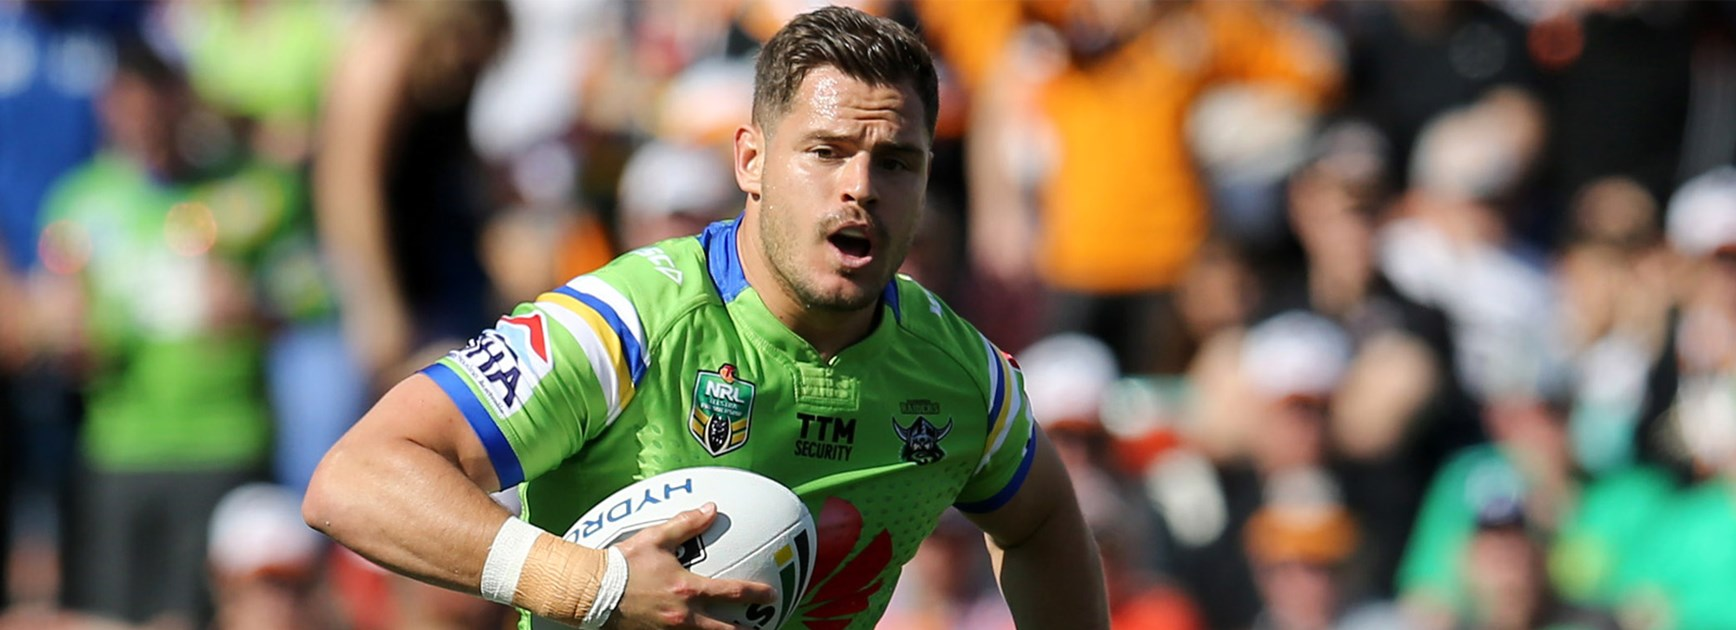 Raiders five-eighth Aidan Sezer in action against the Tigers on Sunday.